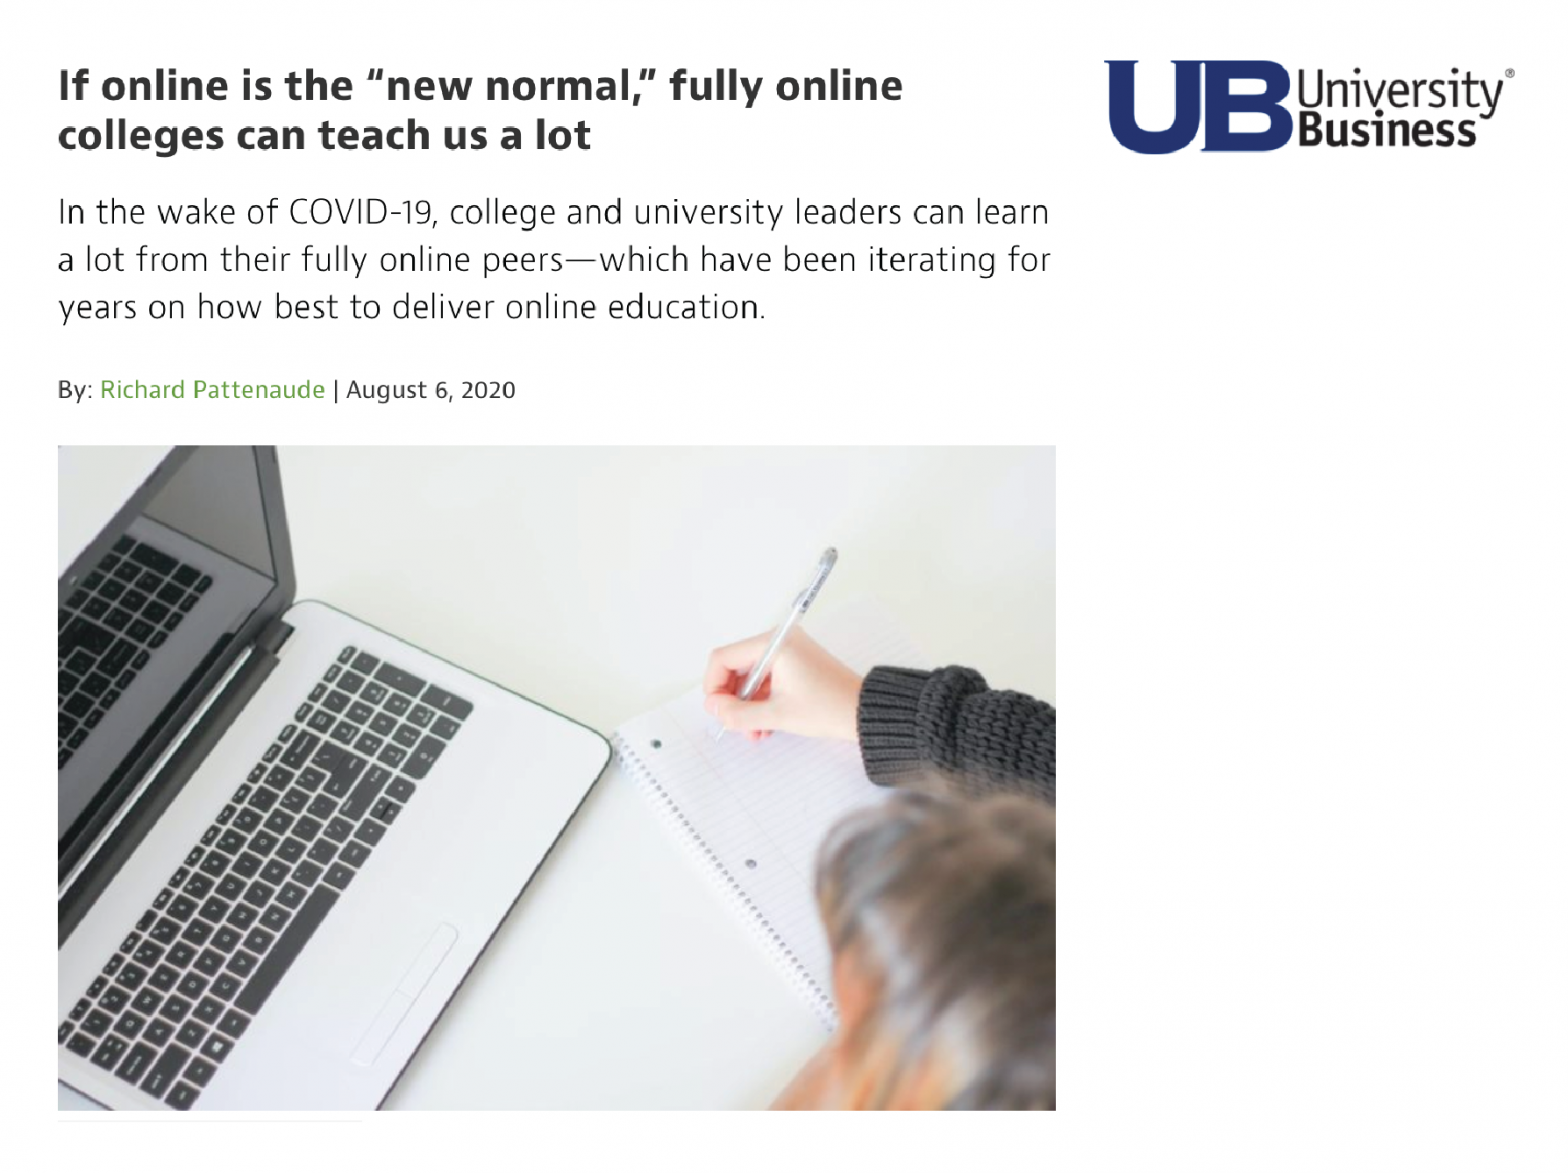 Screenshot of article from University Business